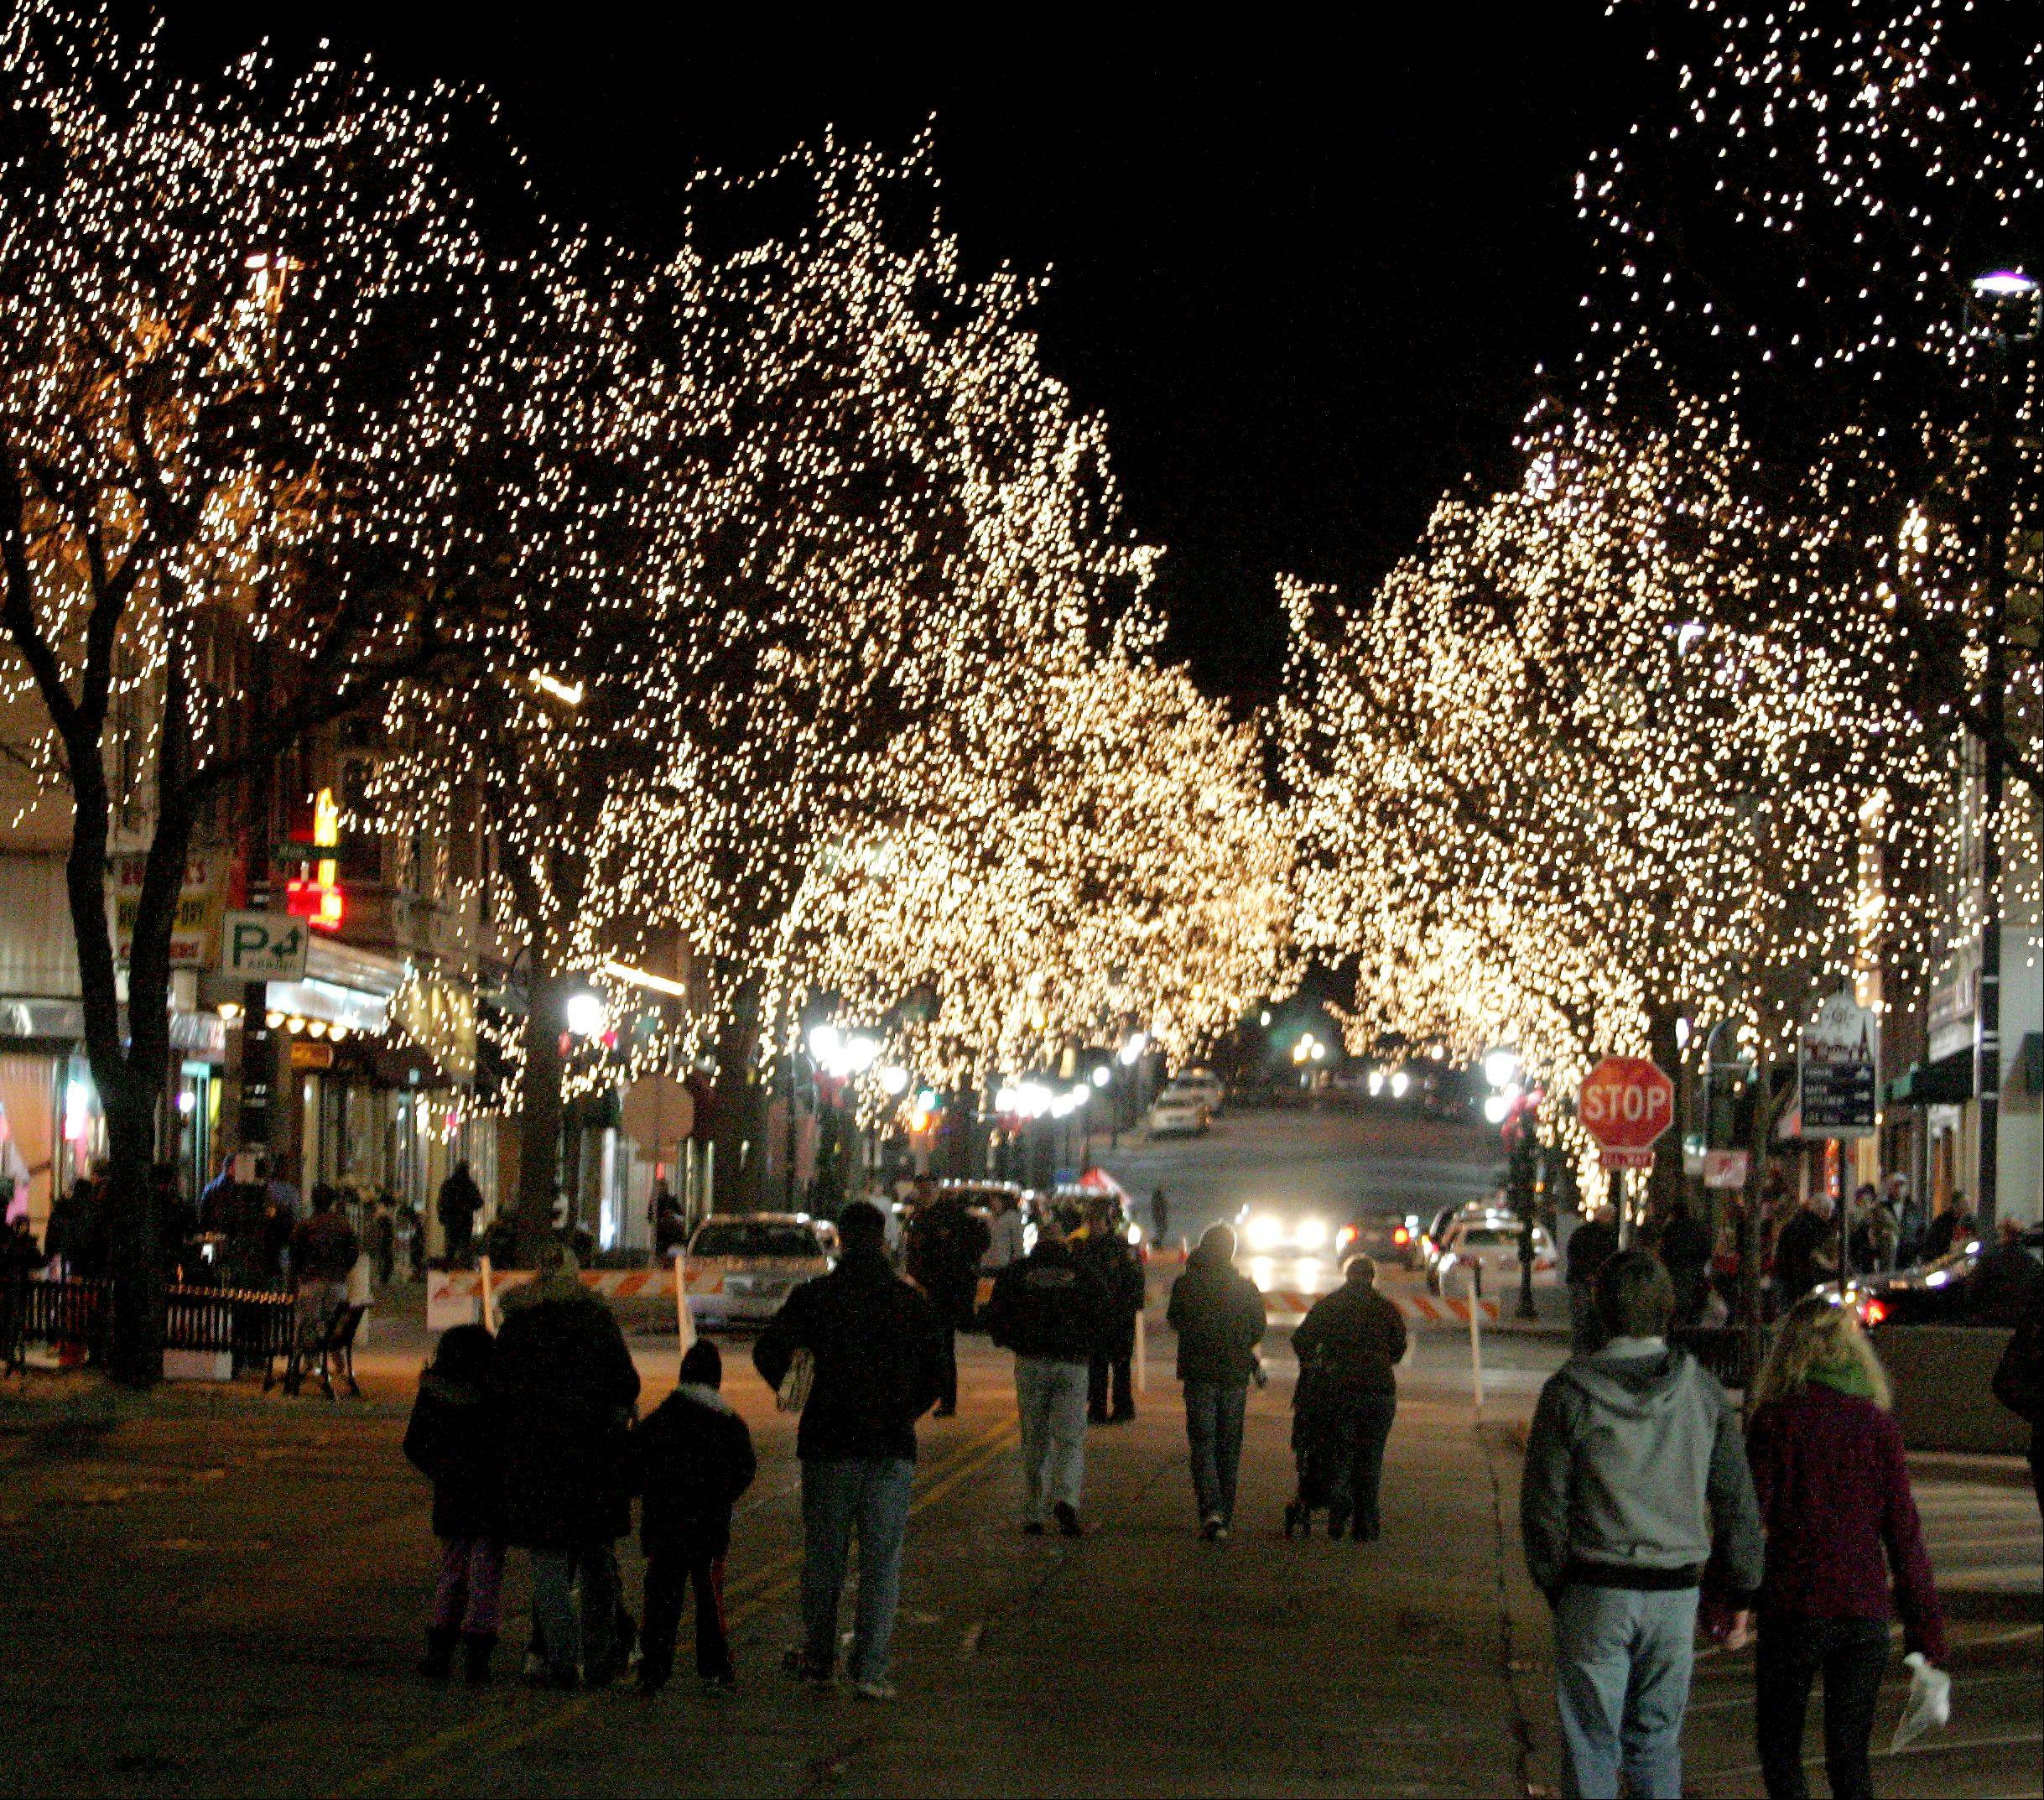 The Grand Illumination is part of the Hometown Holidays in downtown Naperville.